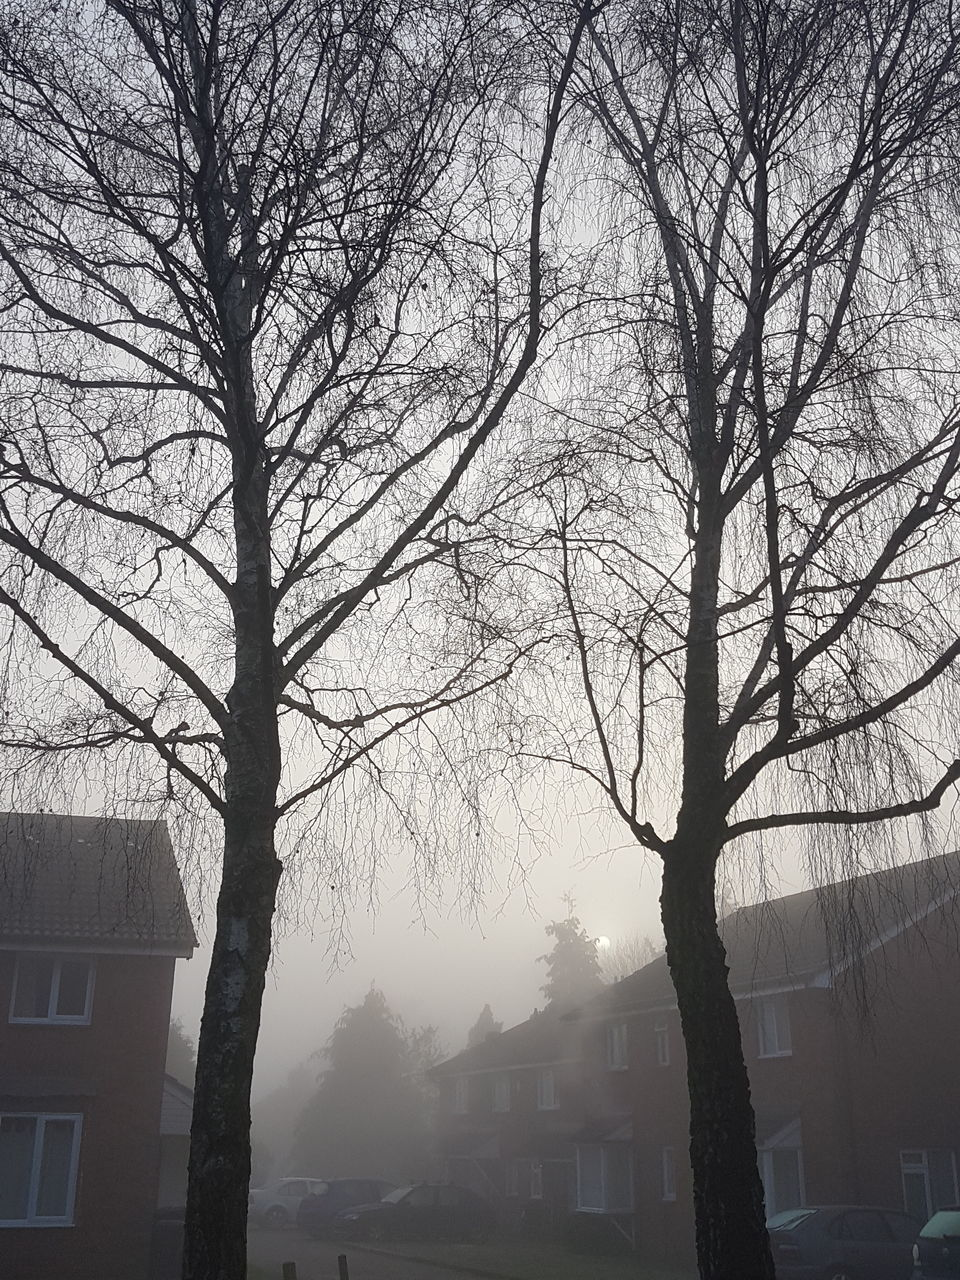 bare tree, building exterior, architecture, tree, built structure, branch, house, outdoors, no people, city, fog, residential building, nature, winter, day, beauty in nature, sky